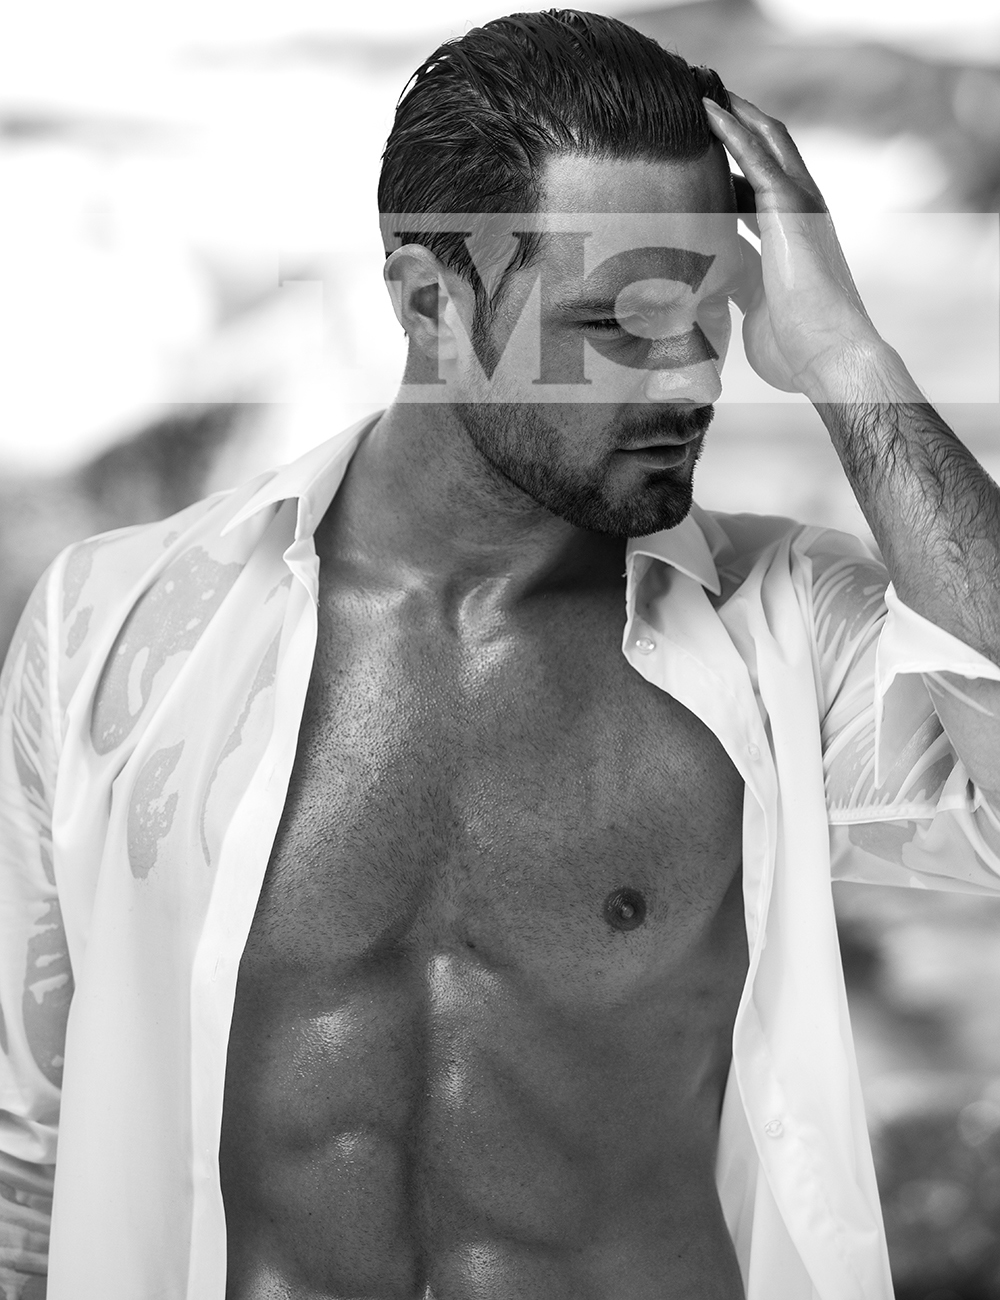 gigolo straight male escort Matt in london munich matt